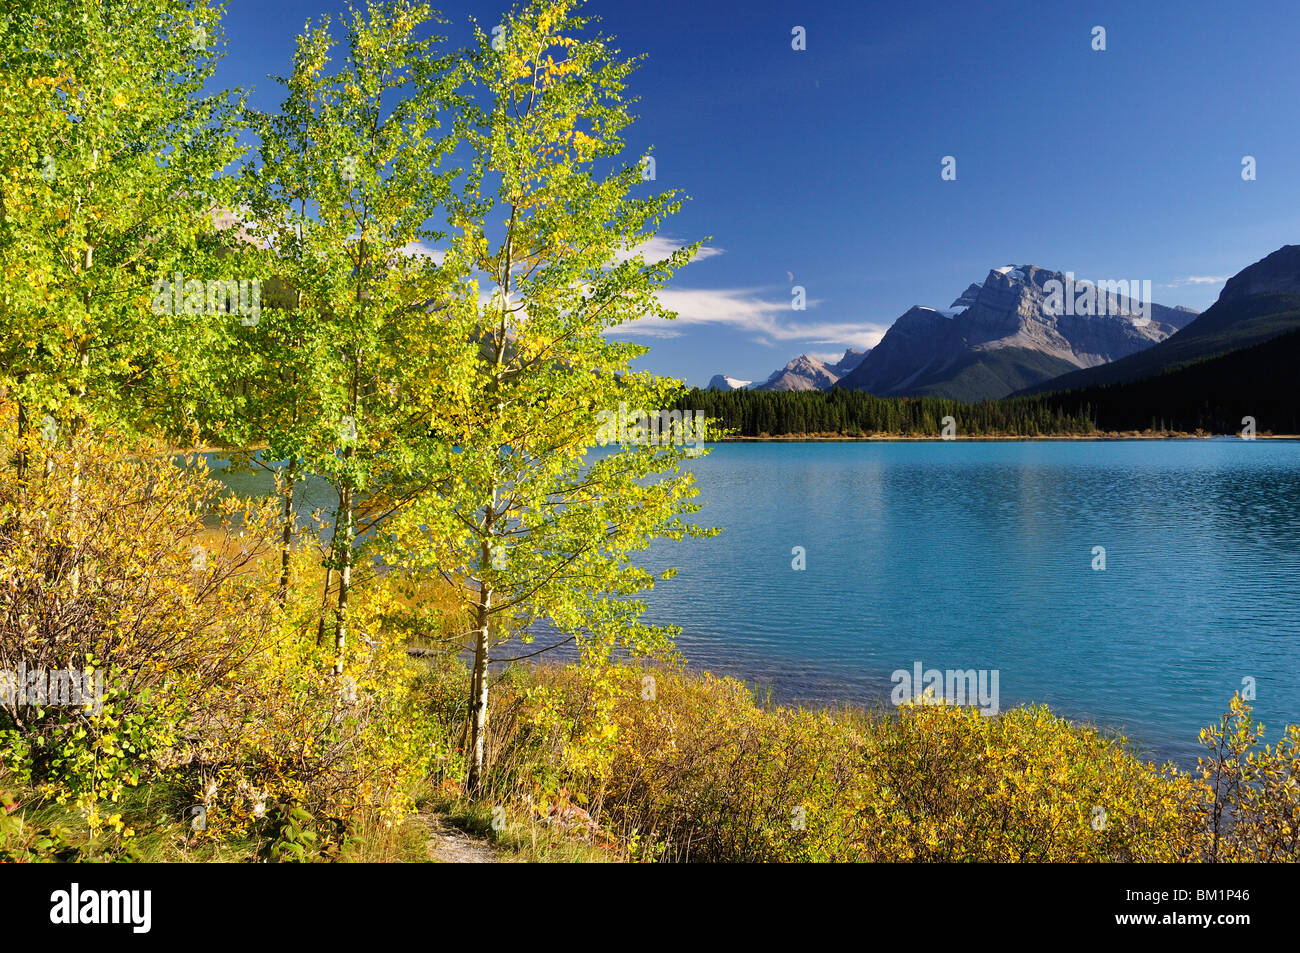 Waterfowl Lake, Banff National Park, UNESCO World Heritage Site, Rocky Mountains, Alberta, Canada, North America - Stock Image